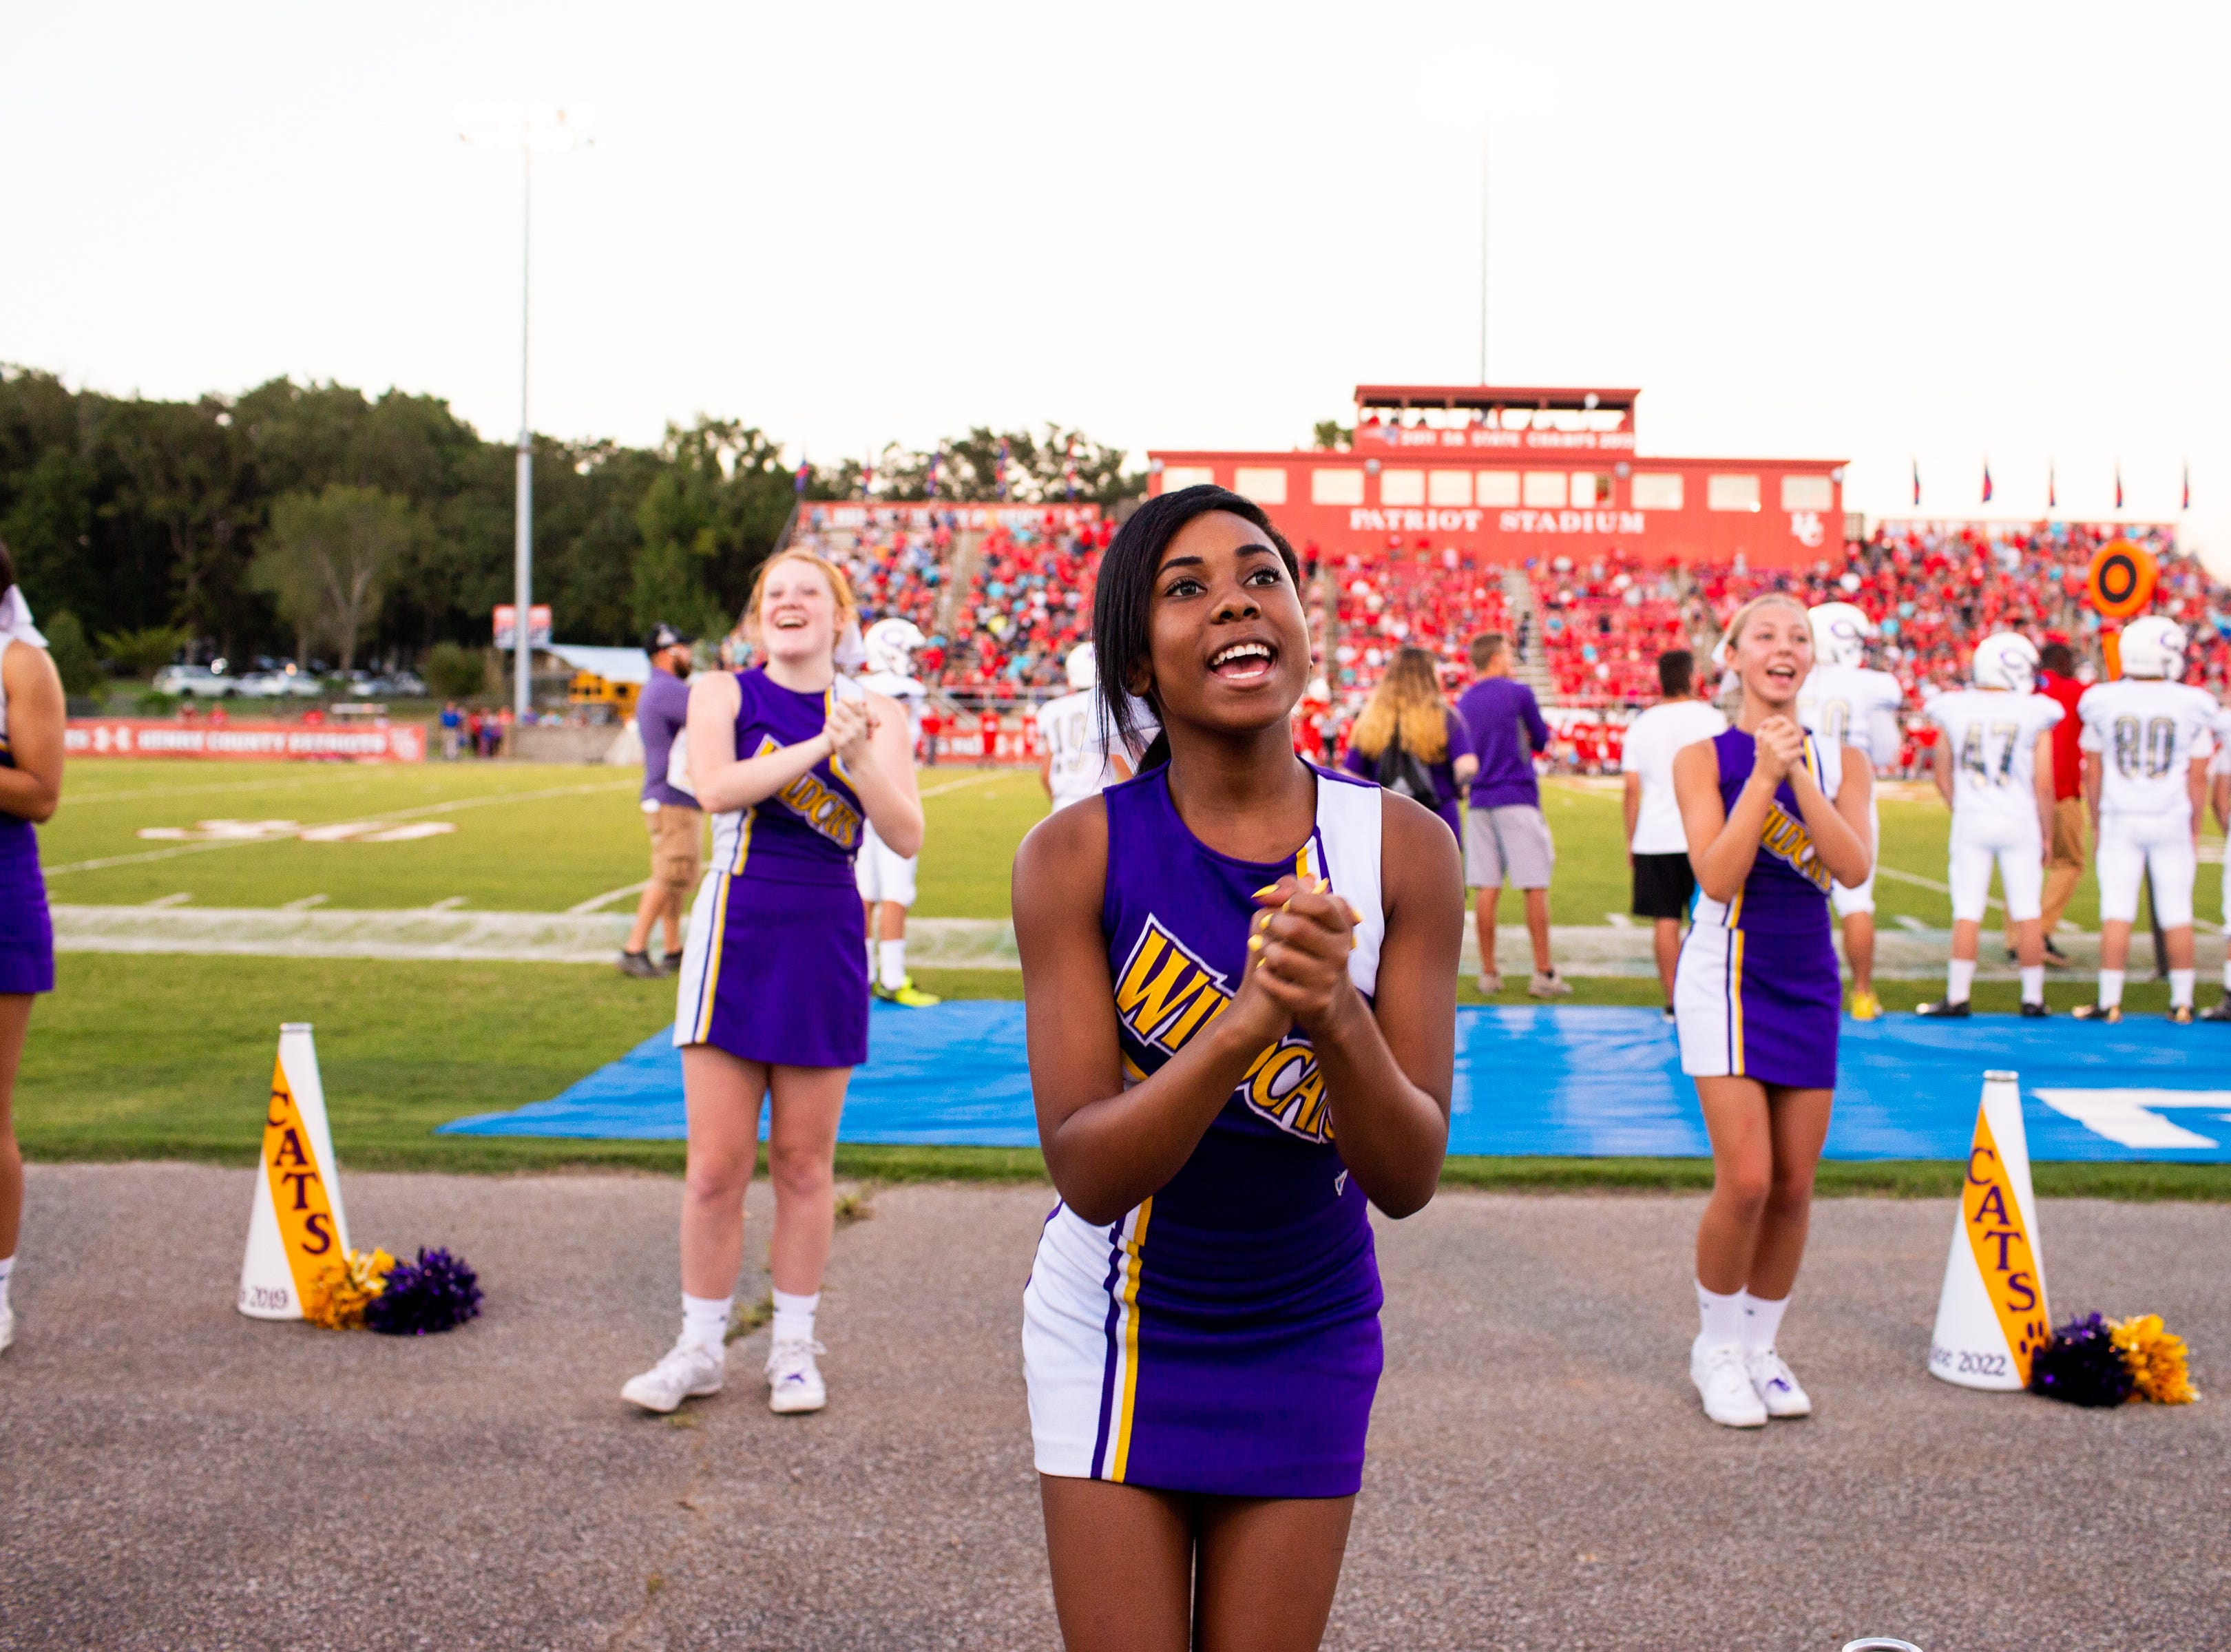 Clarksville High cheerleaders fire up the crowd during the first half at Henry County Friday, Sept. 14, 2018, in Paris, Tenn.